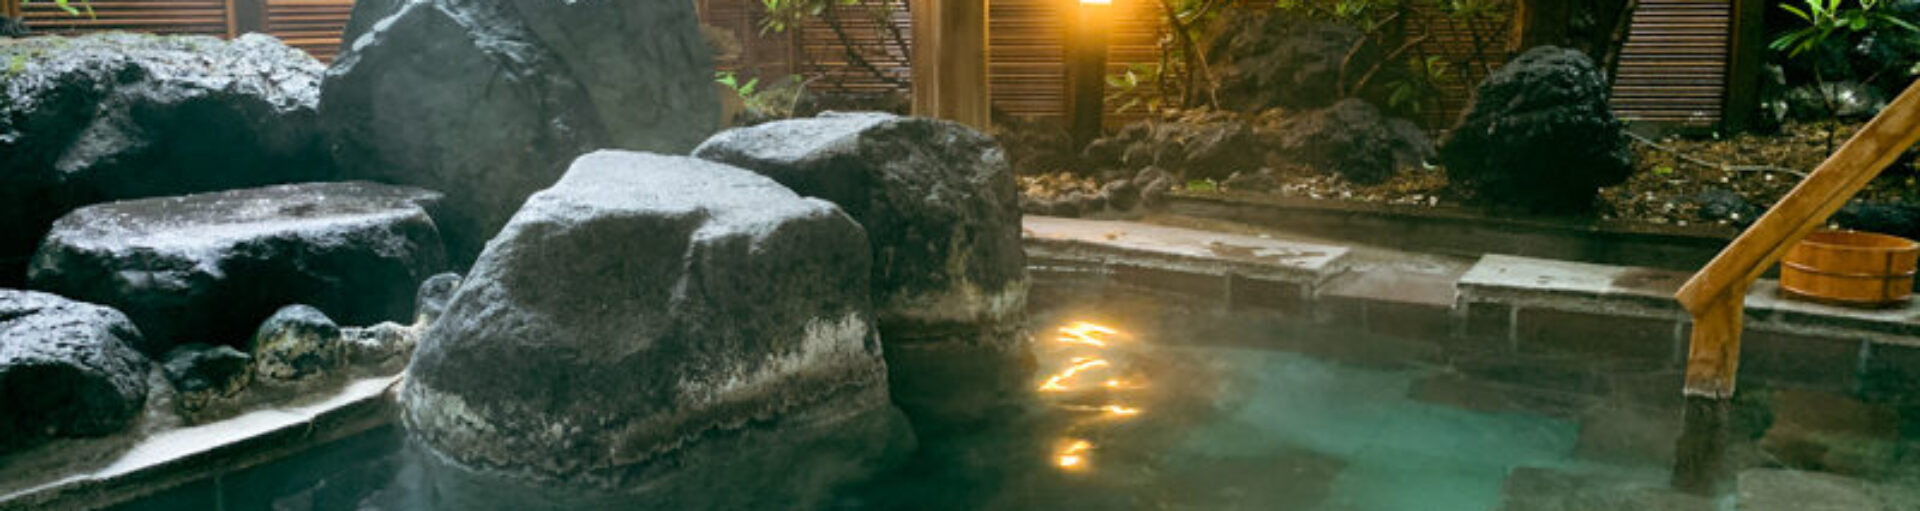 The Japanese Hotsprings – guide to Onsen in Japan